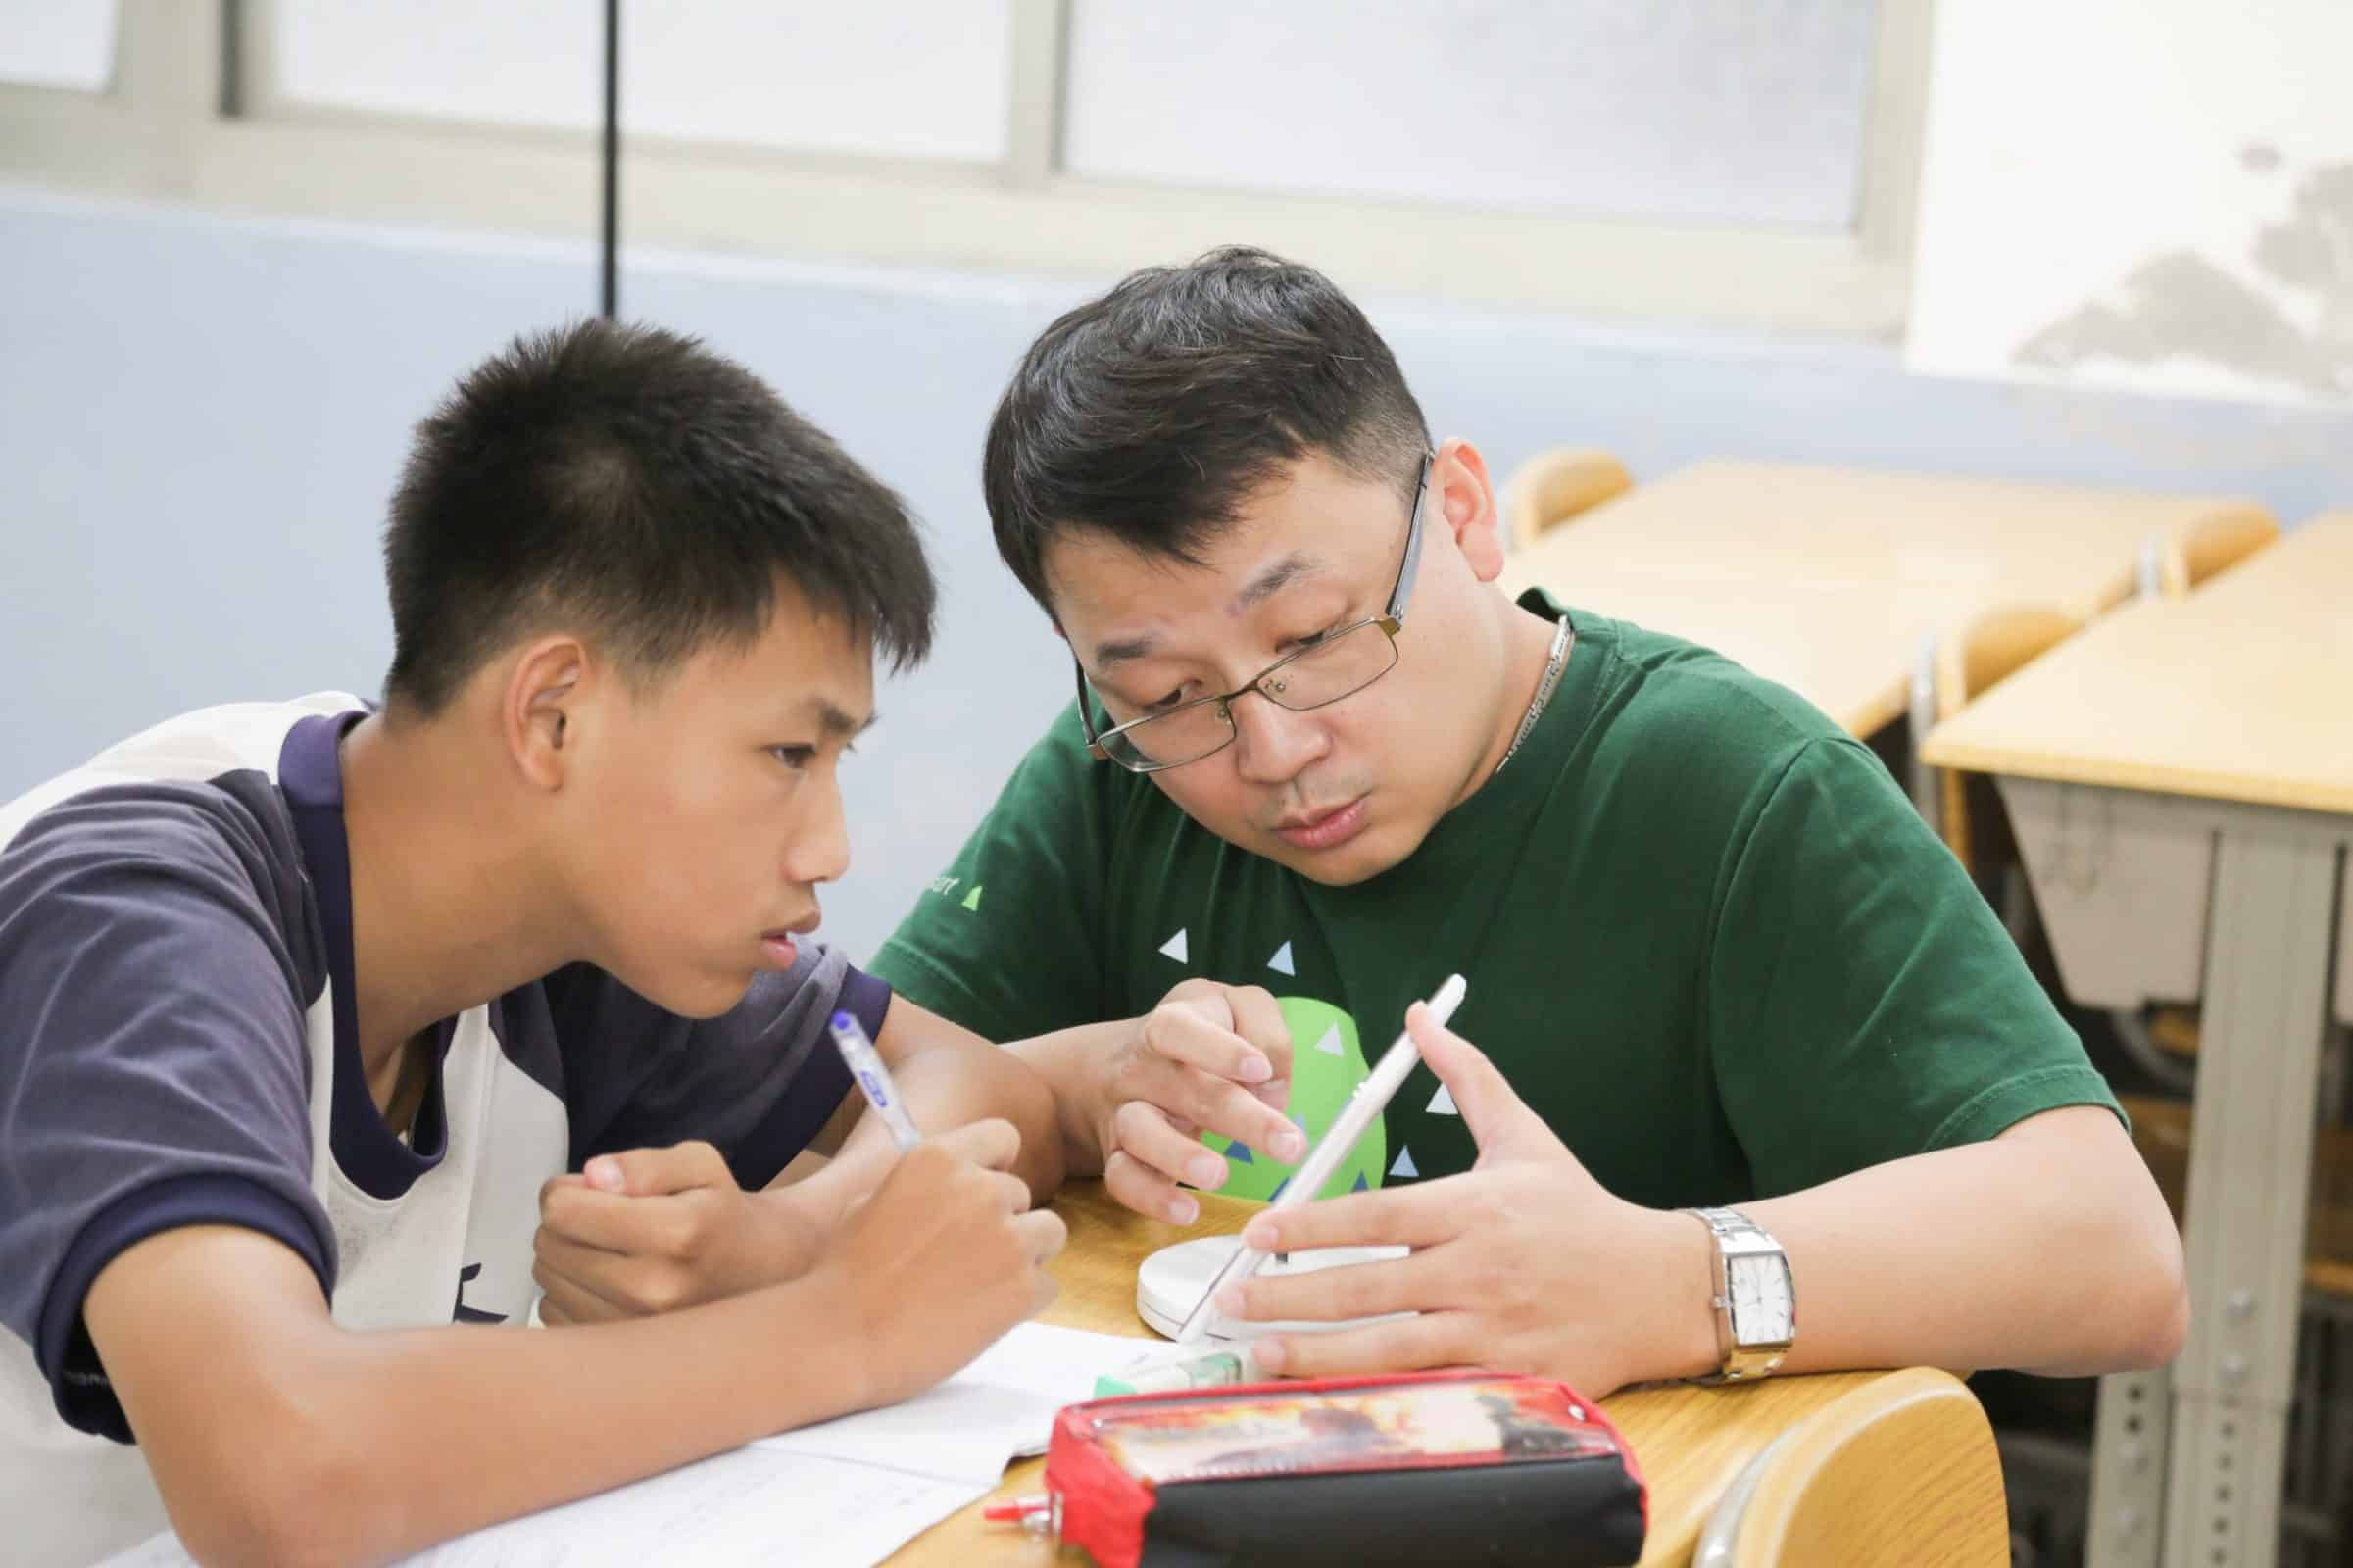 Junyi educational platform makes learning more than just one-way teaching, and gives teachers more energy to teach children according to their aptitude.